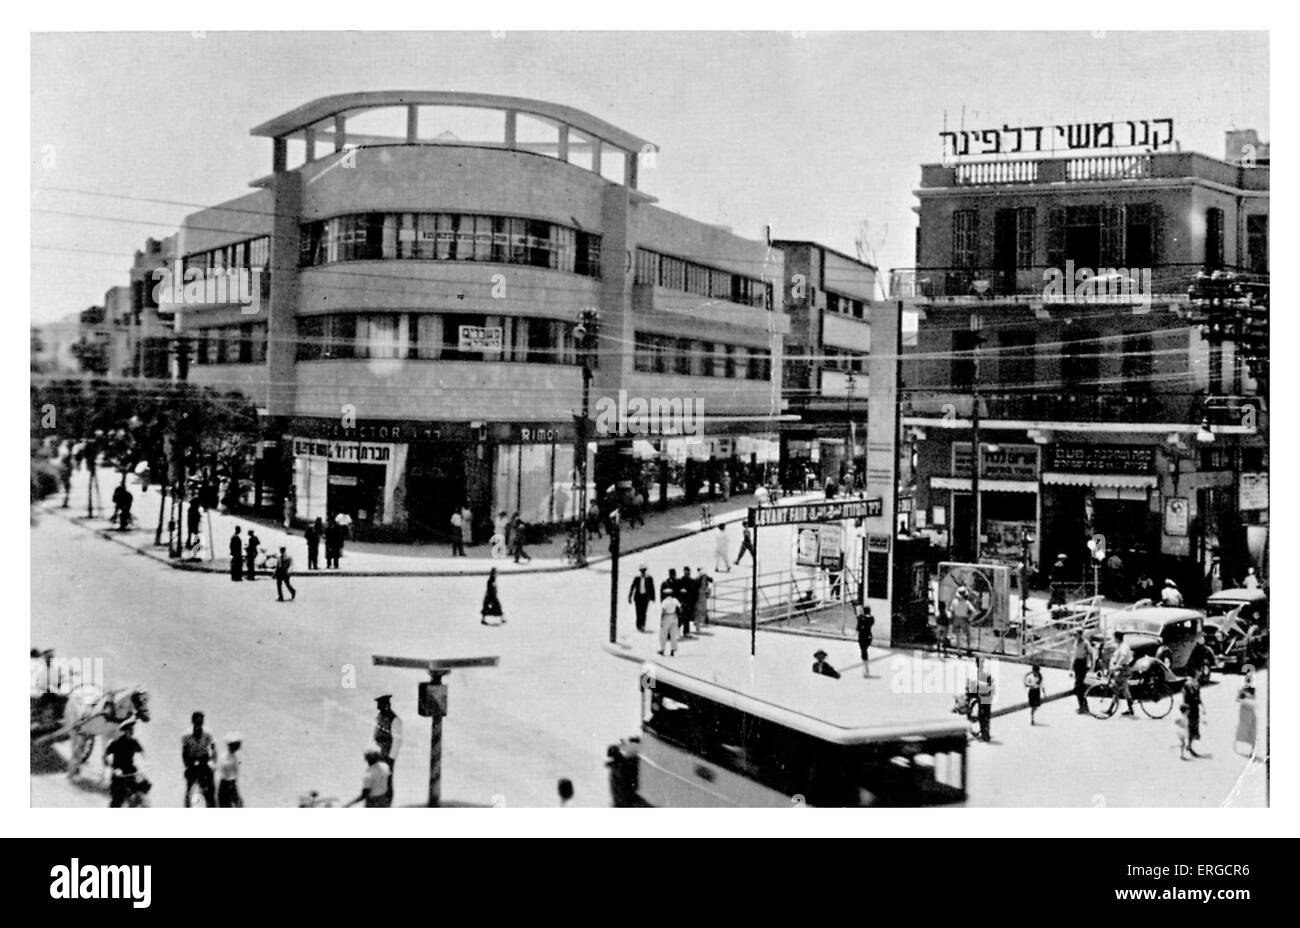 Tel Aviv- crossing on Allenby Road near the Carmel Market. - Stock Image